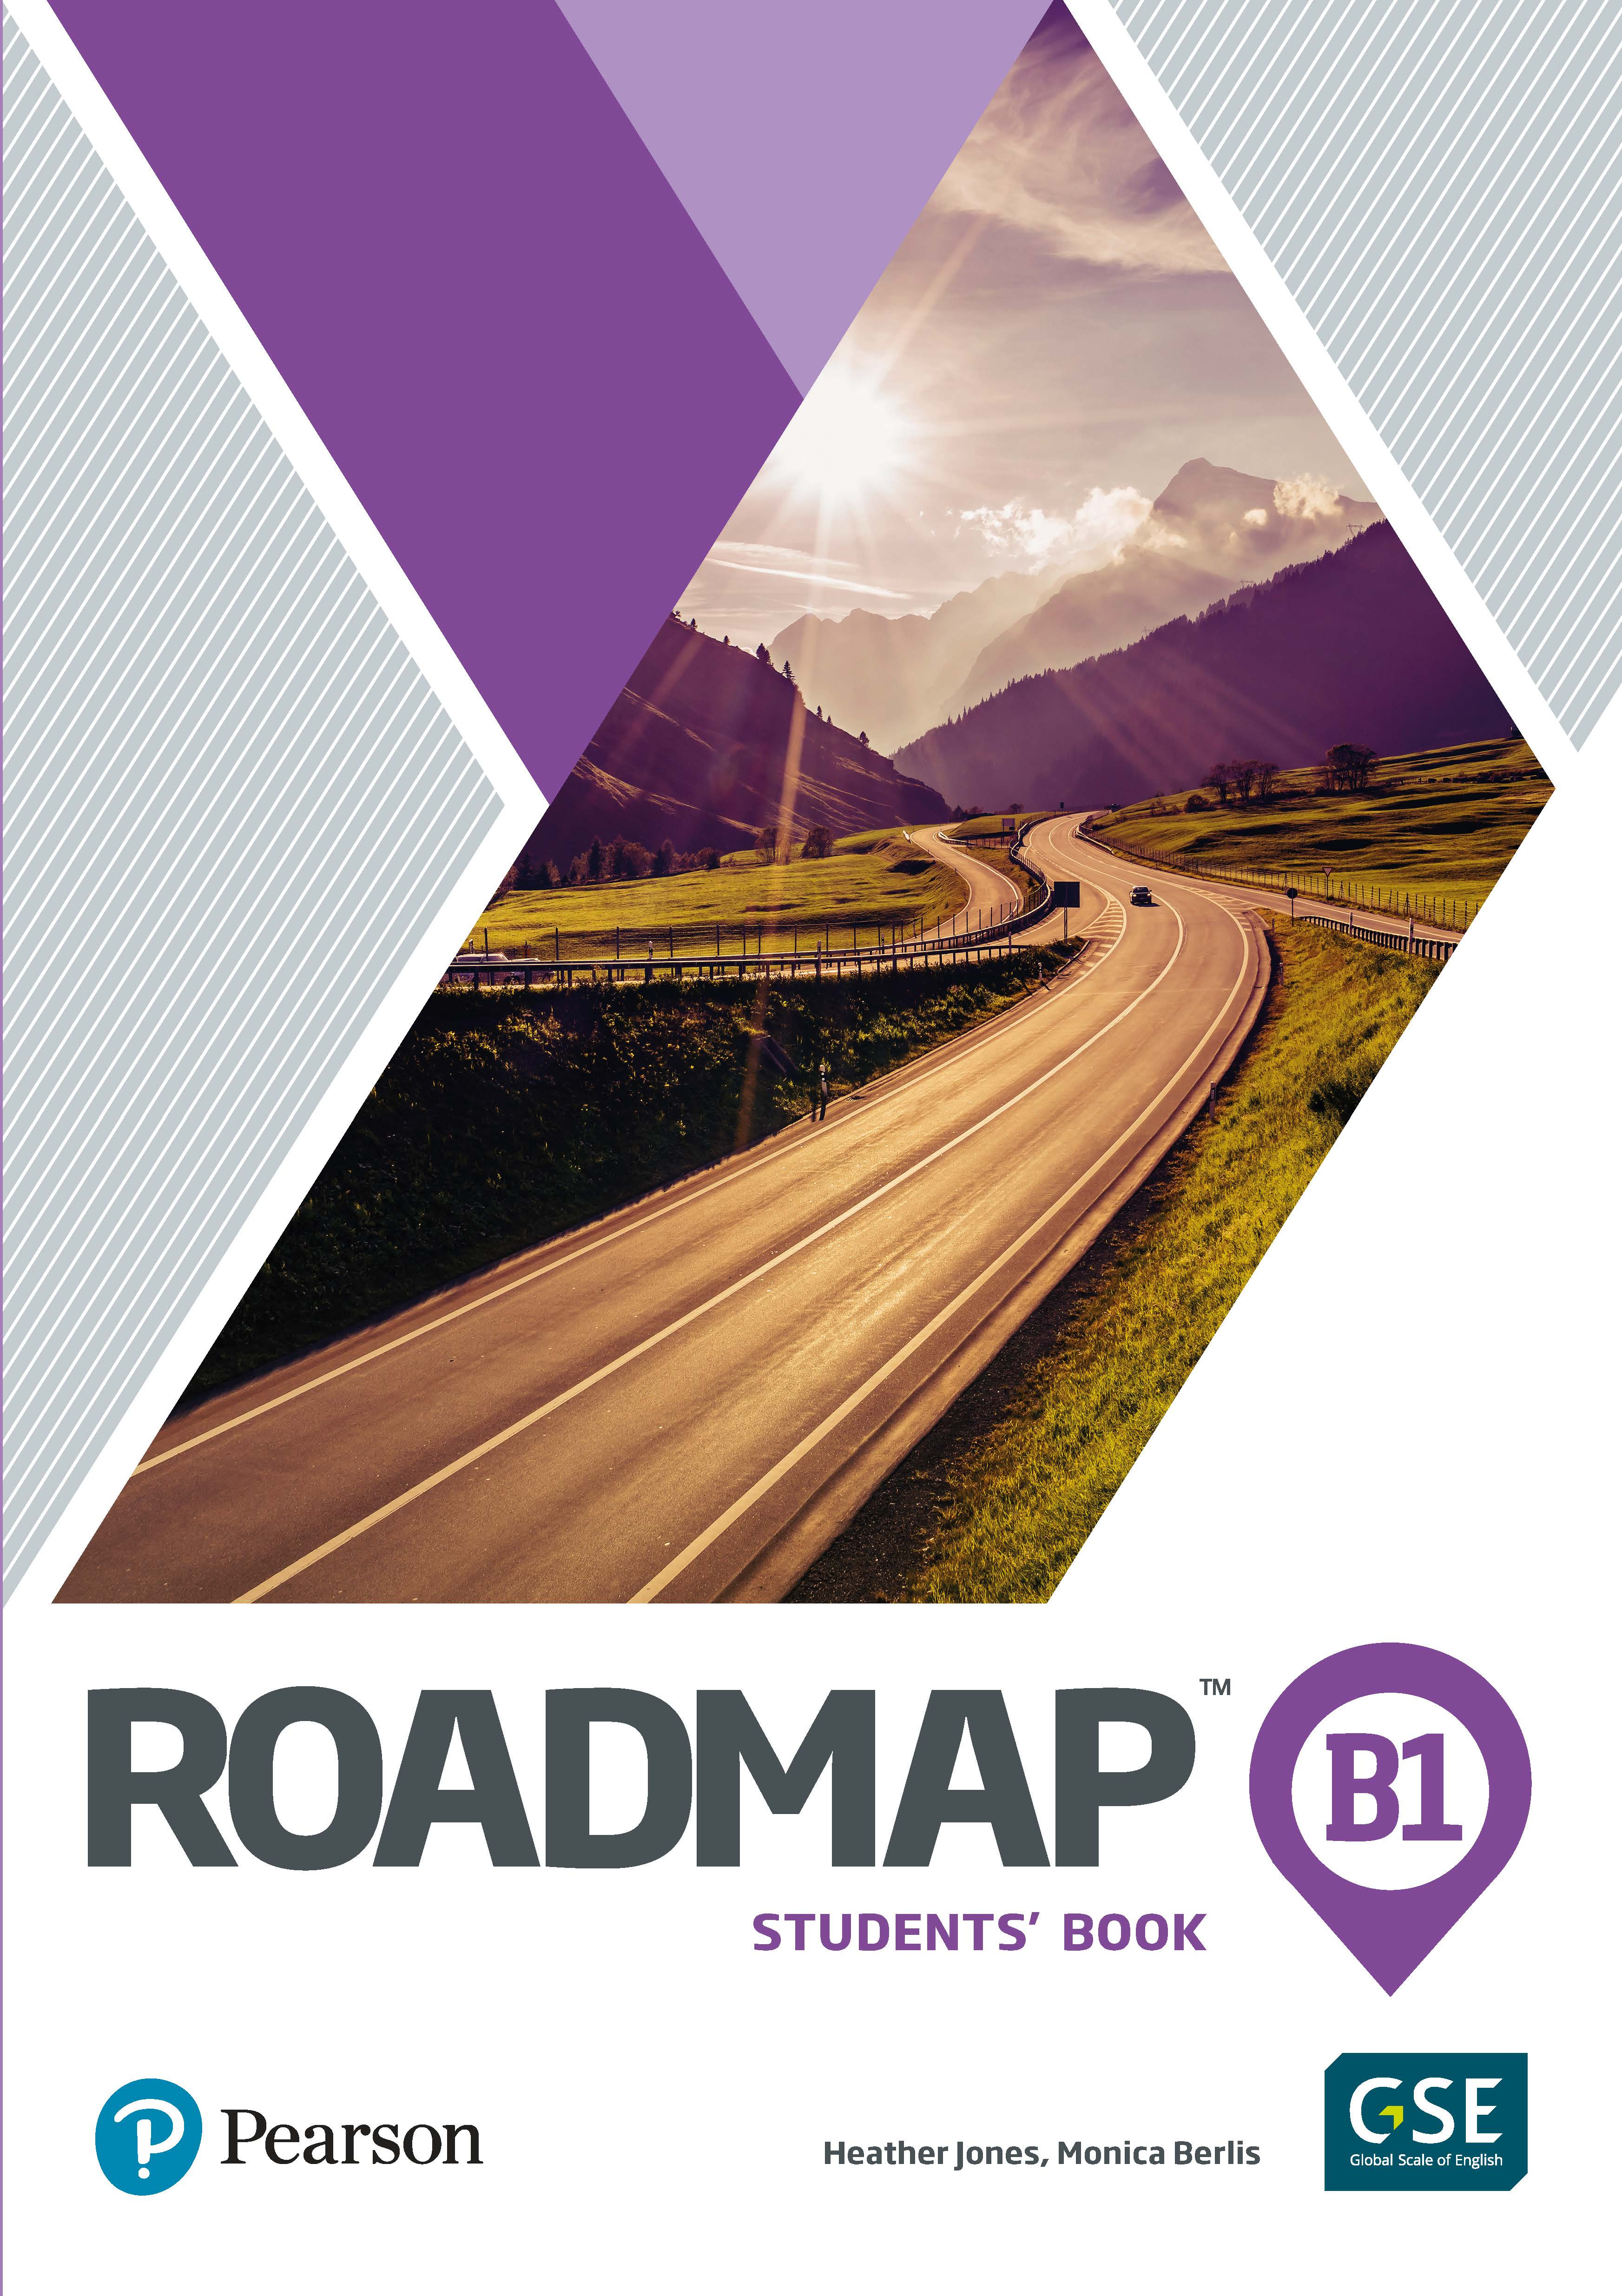 Roadmap cover